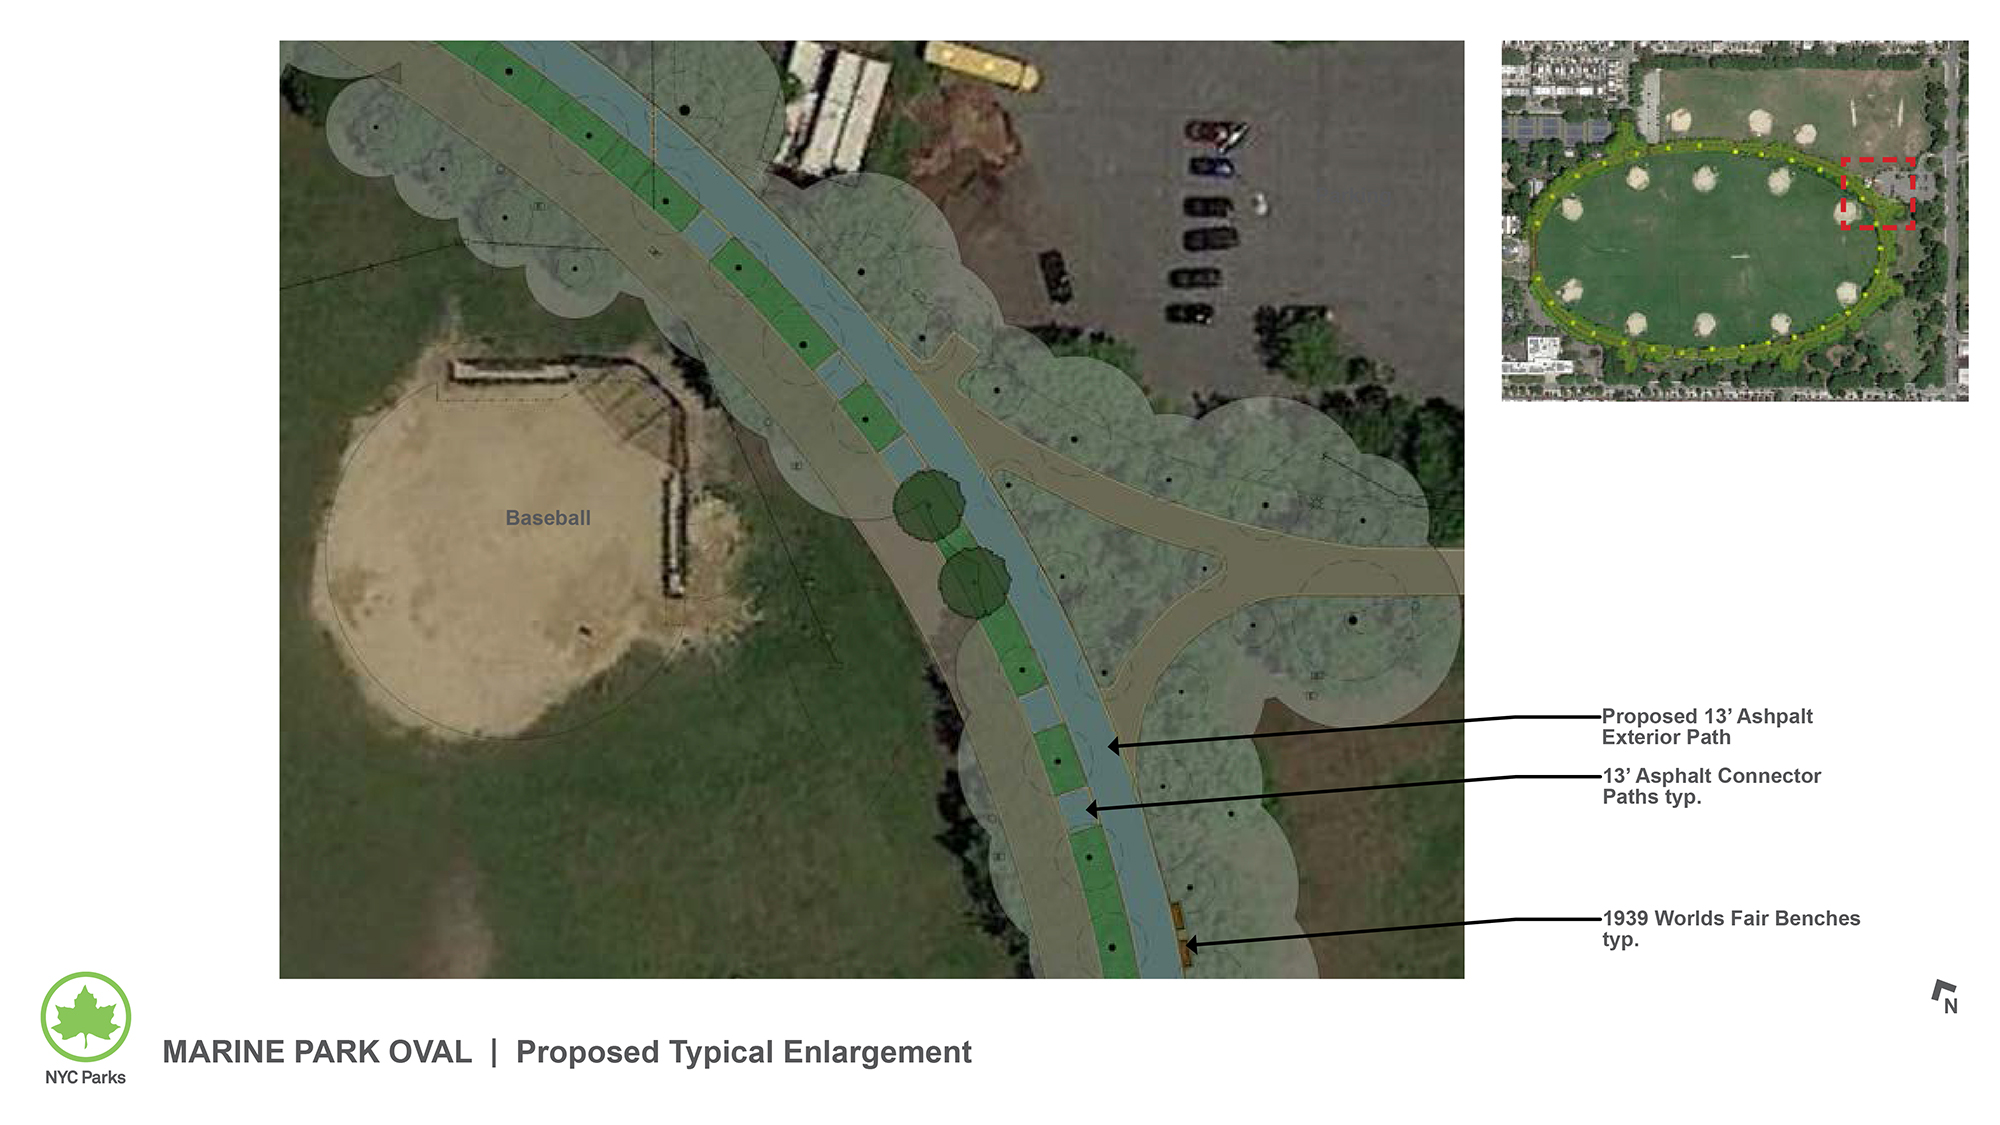 Design of Marine Park Oval Outer Ring Reconstruction